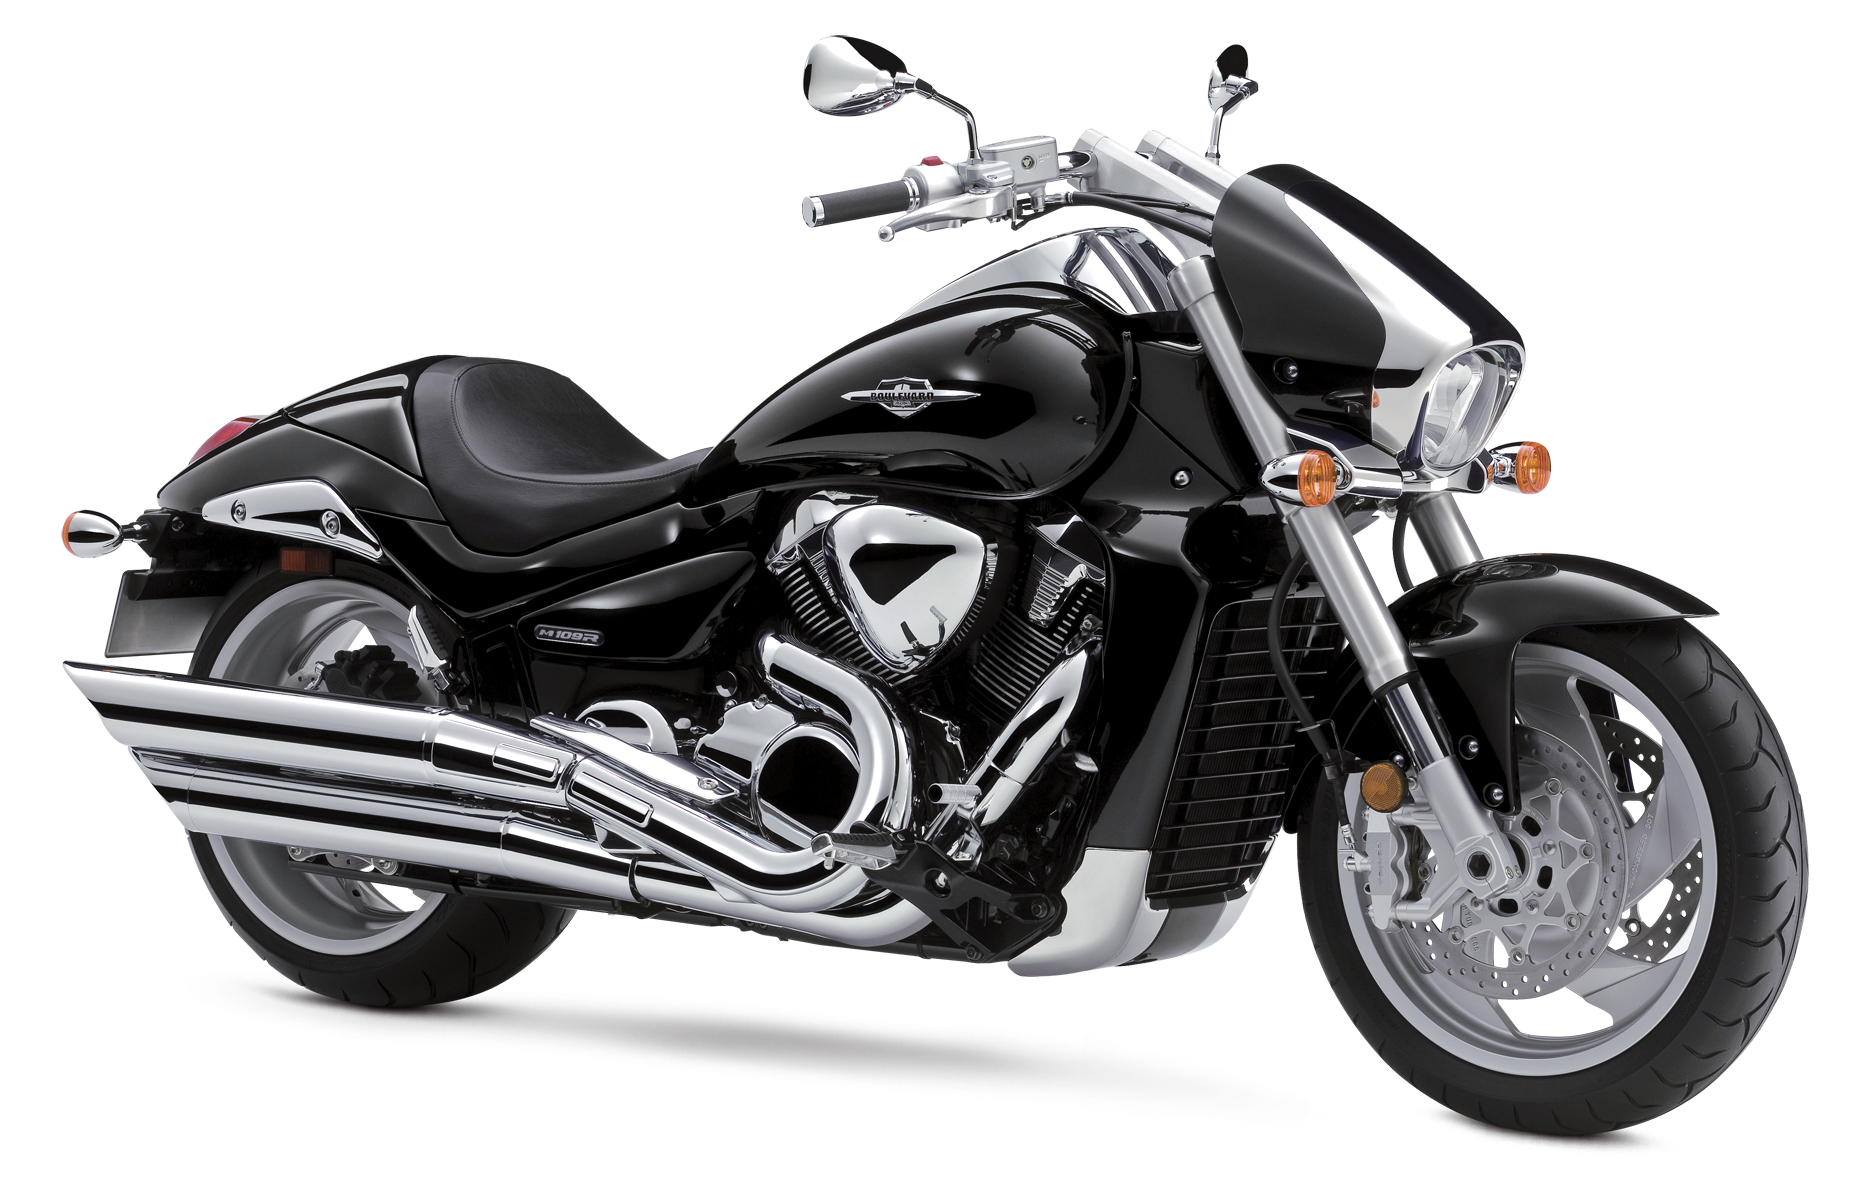 Suzuki cycles product lines cycles products boulevard m109r 2012 m109r